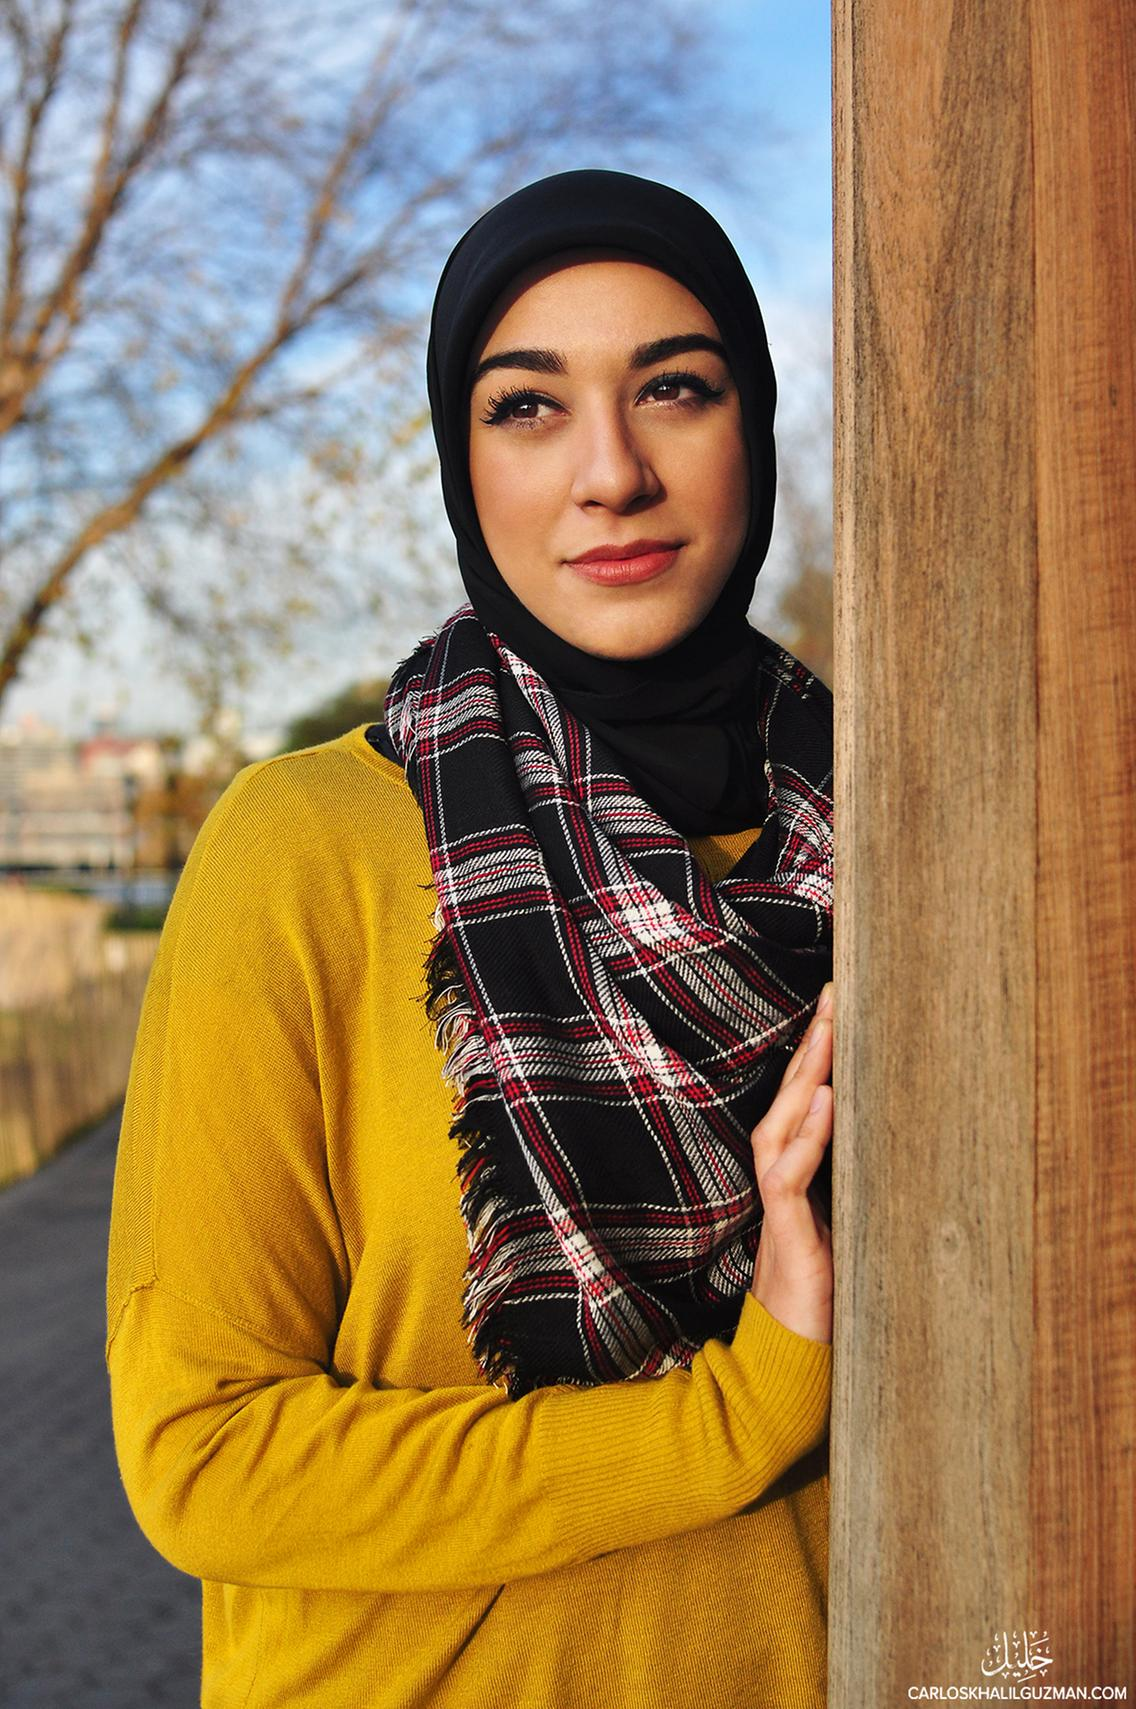 Muslims of America: the Photo Project Showcasing the Diversity of Islam